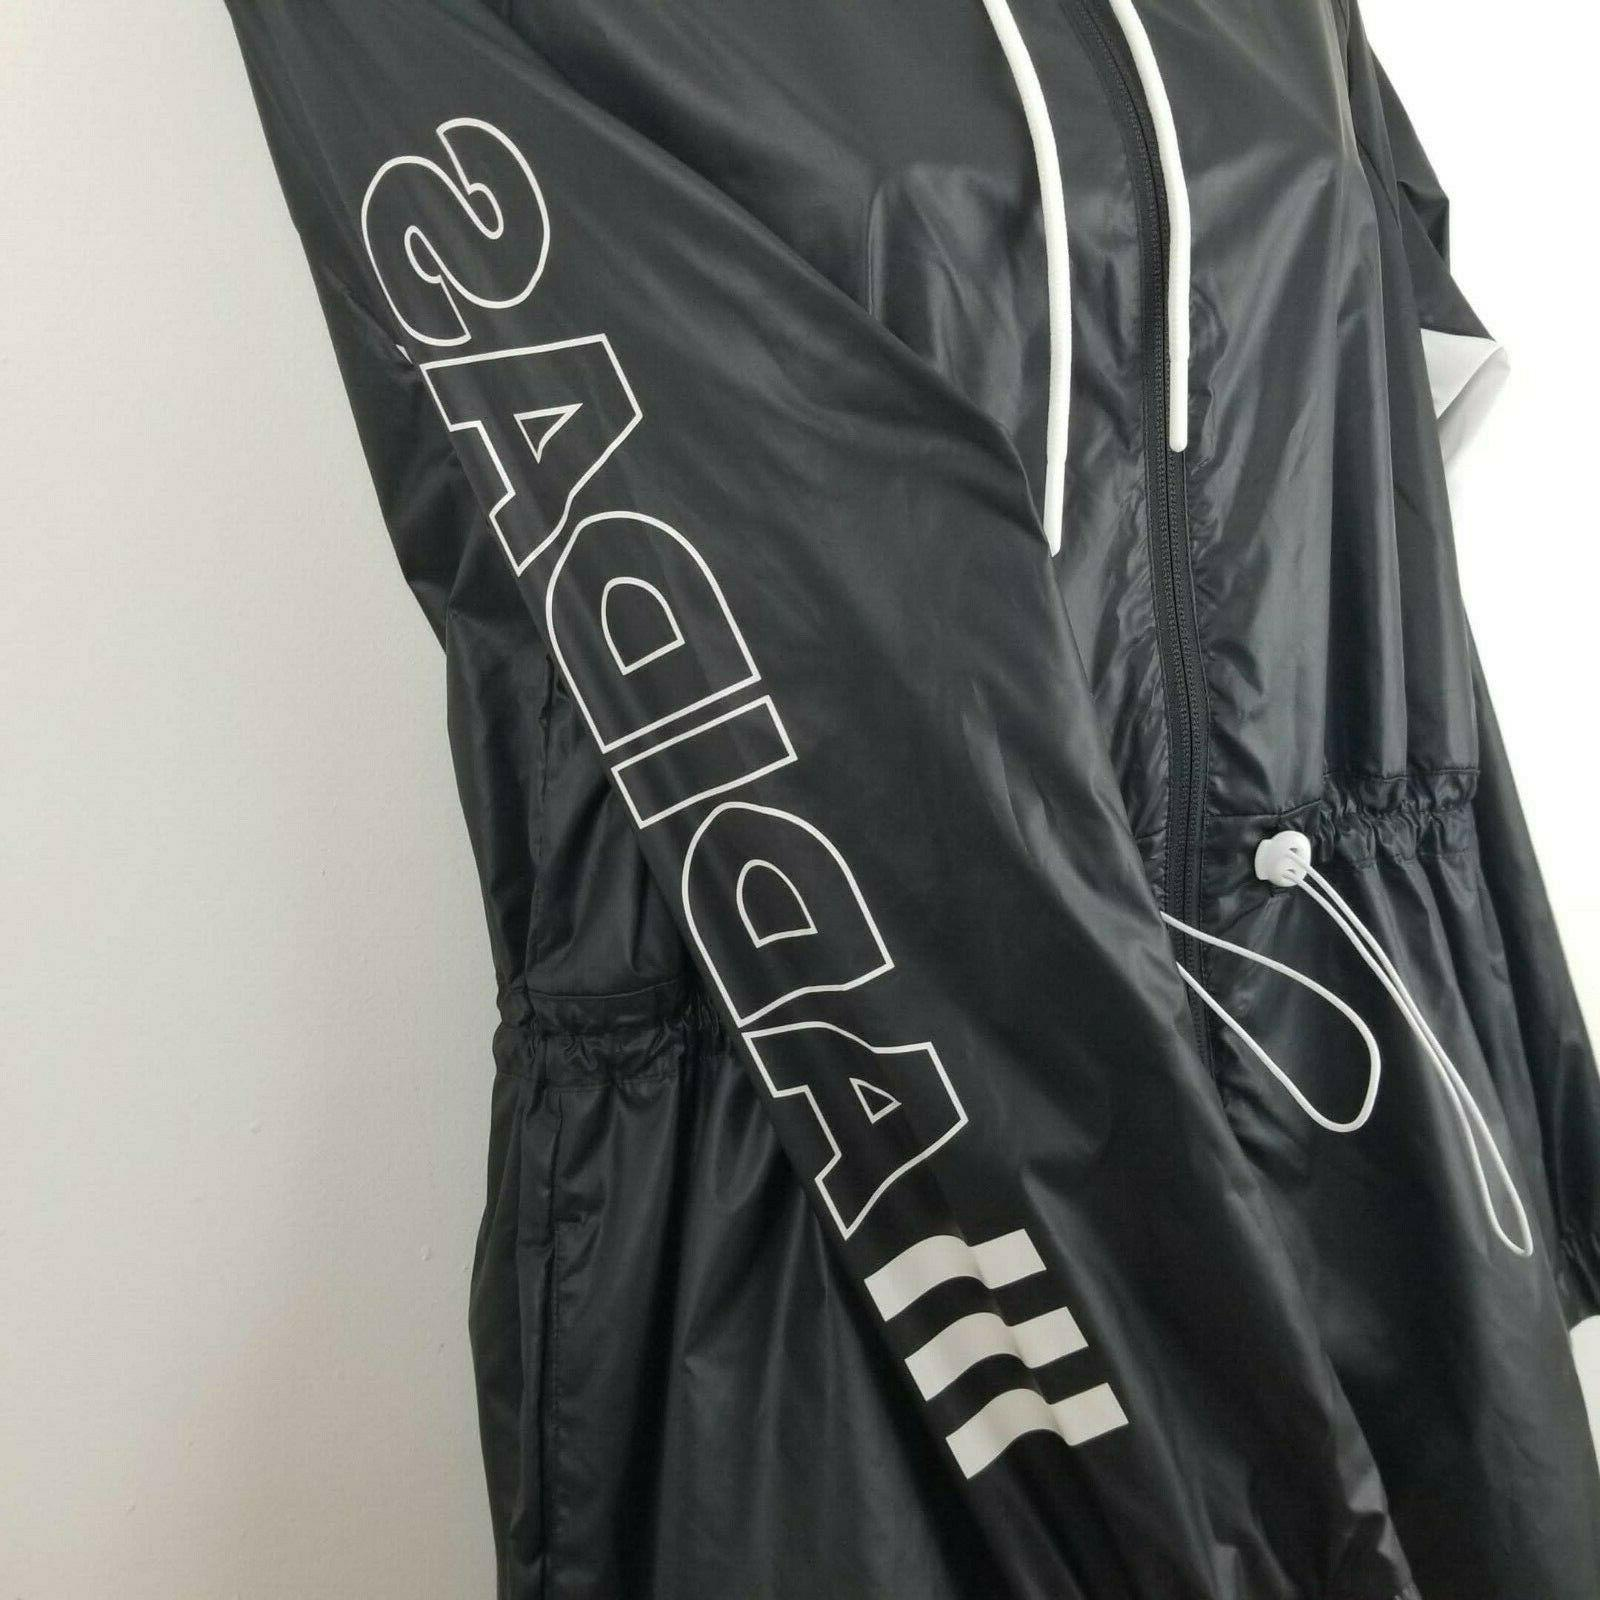 Adidas Outline Large Womens Black and White